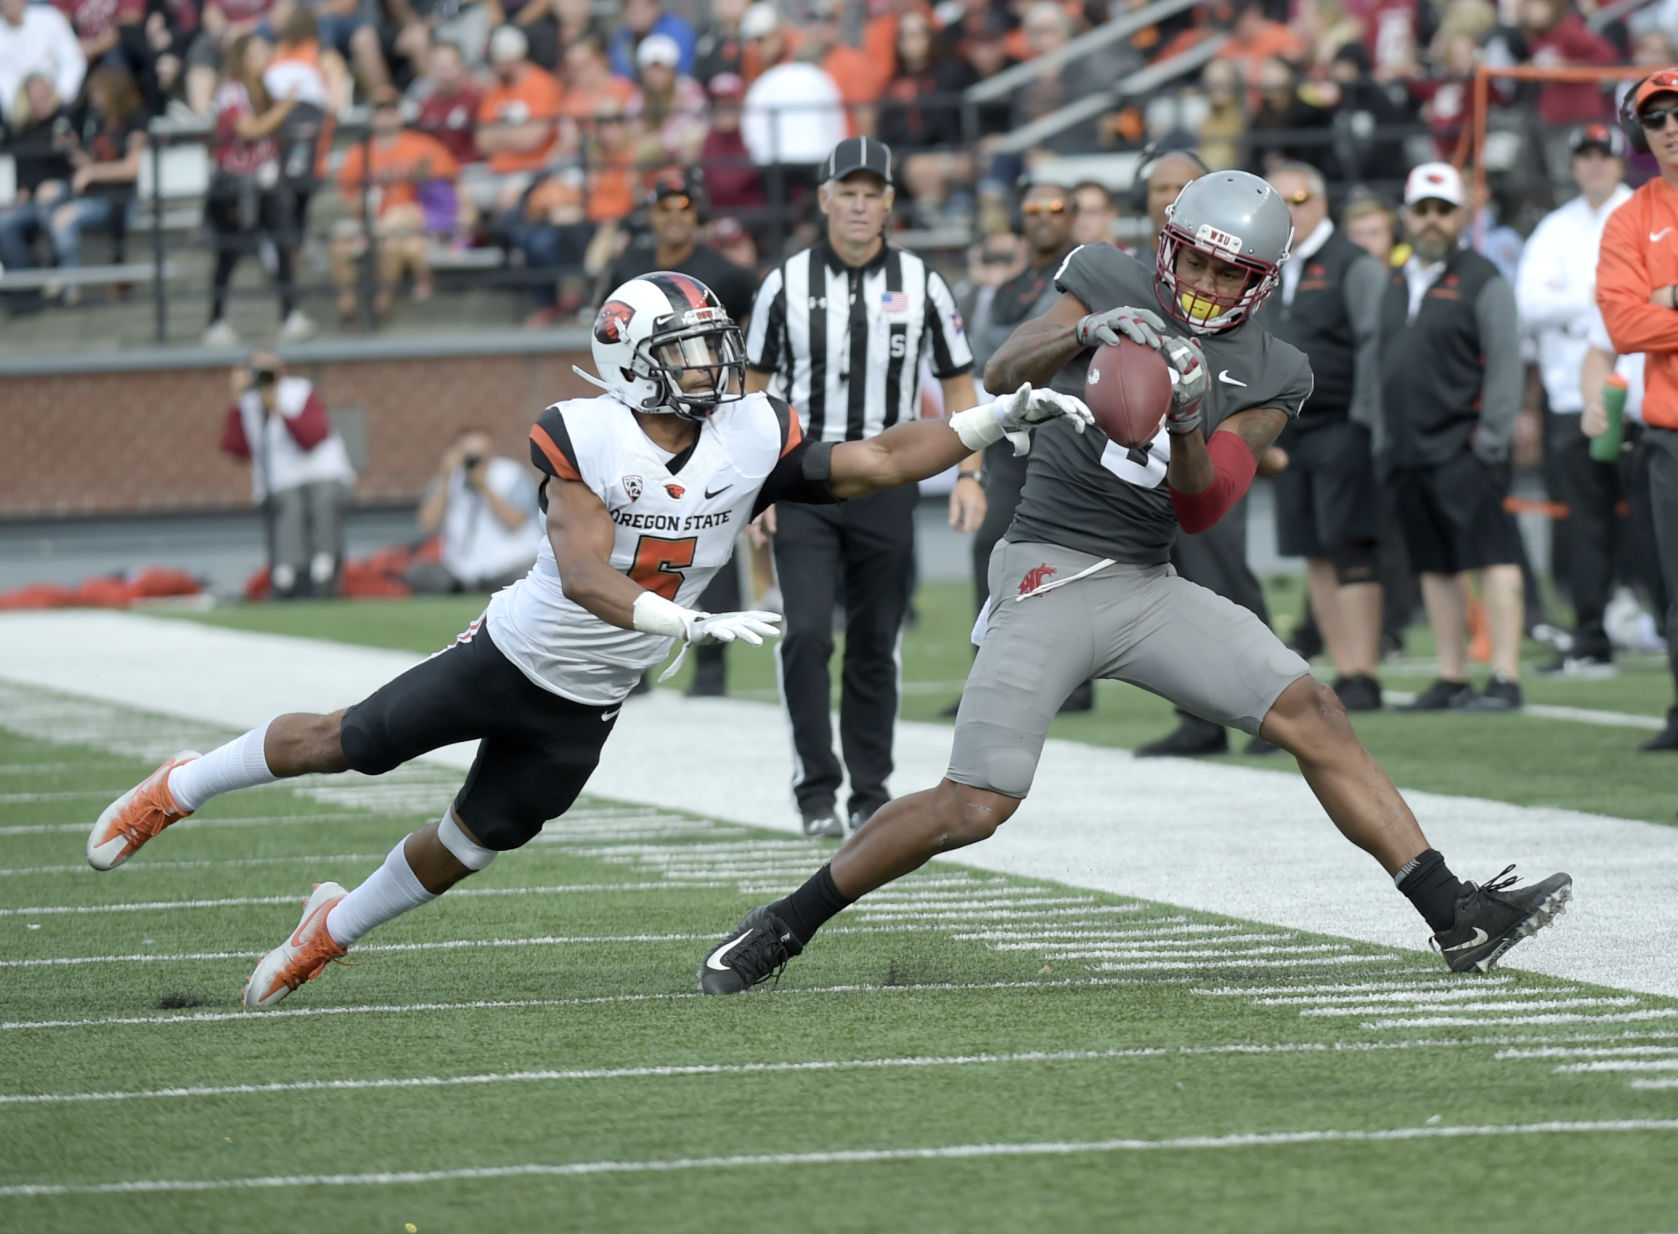 Oregon State vs. Washington State Football